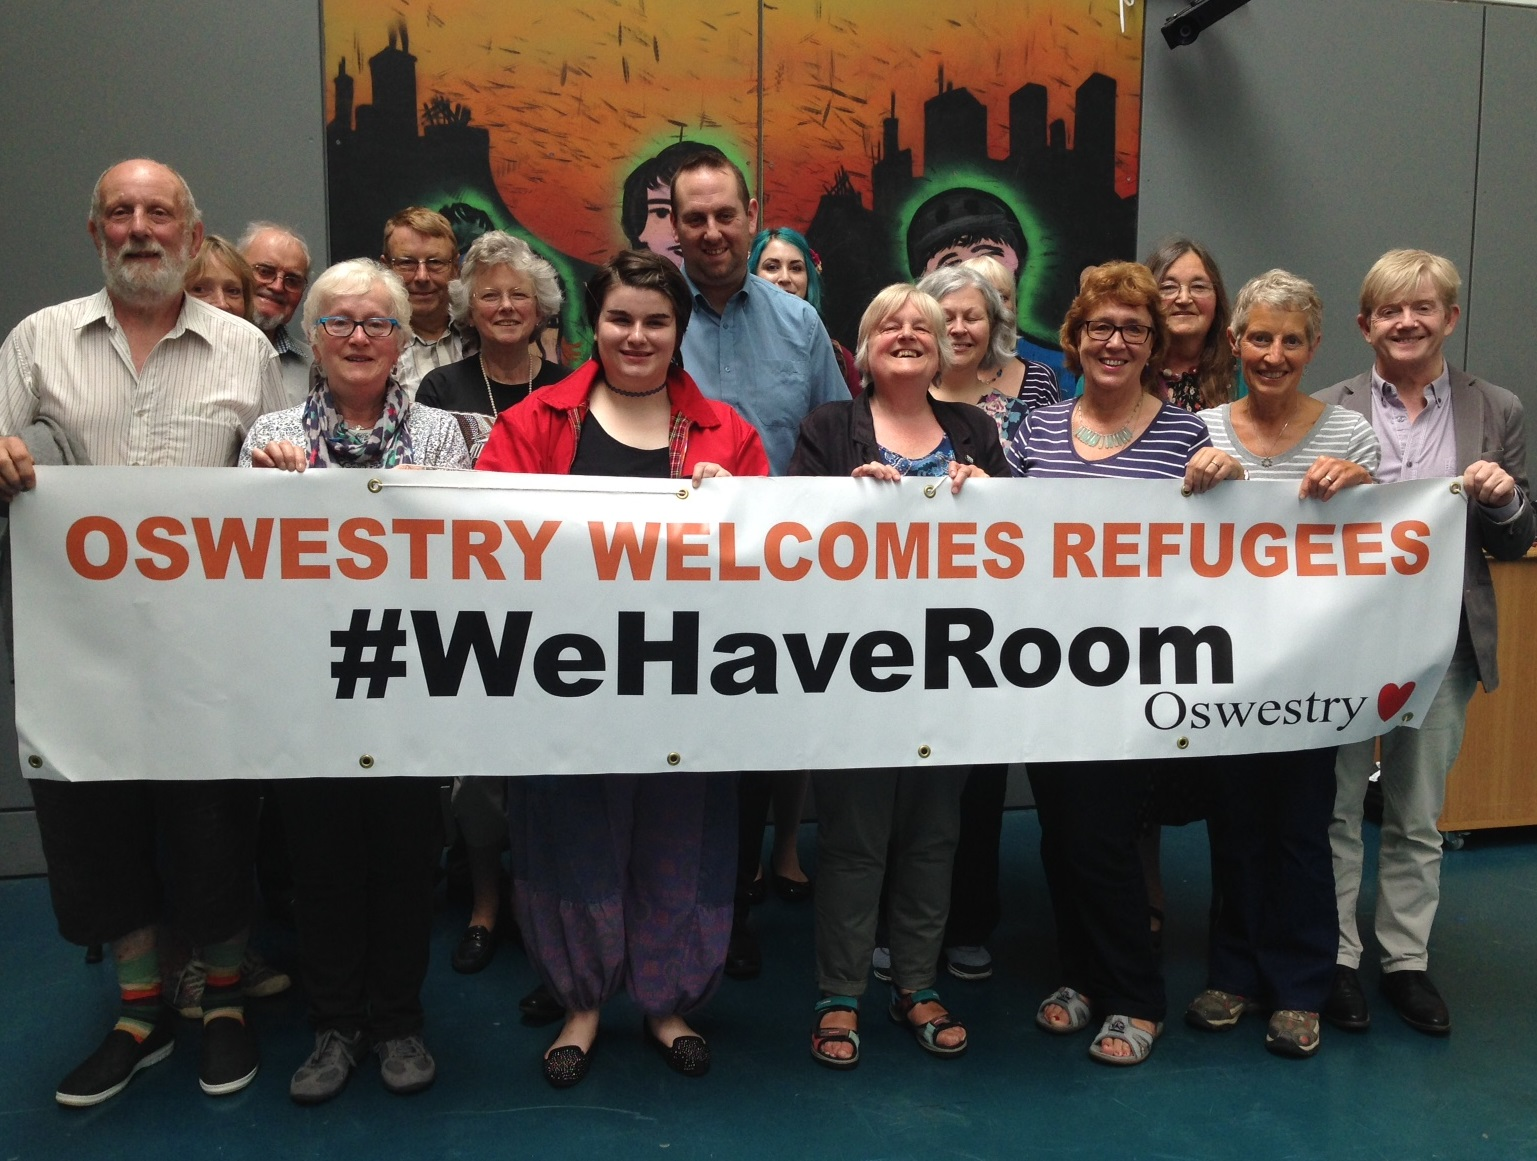 Oswestry Welcomes Refugees supporters took part in a Syrian Cultural Awareness talk at The Centre in Oak Street on Saturday 11th June